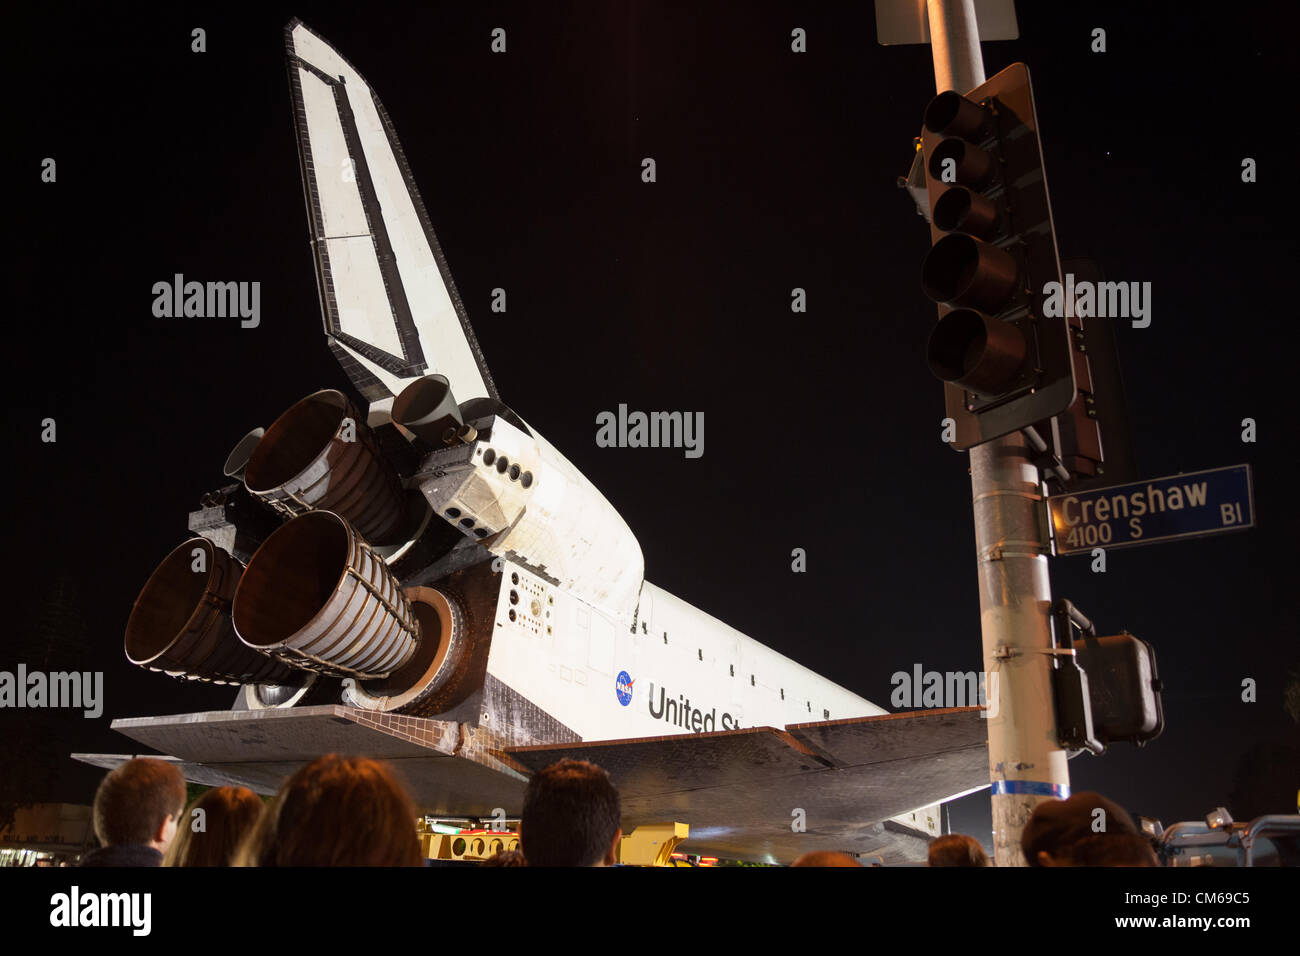 October 13, 2012 - The Space Shuttle Endeavour makes an overnight stop at Baldwin Hills Crenshaw Plaza on its final - Stock Image